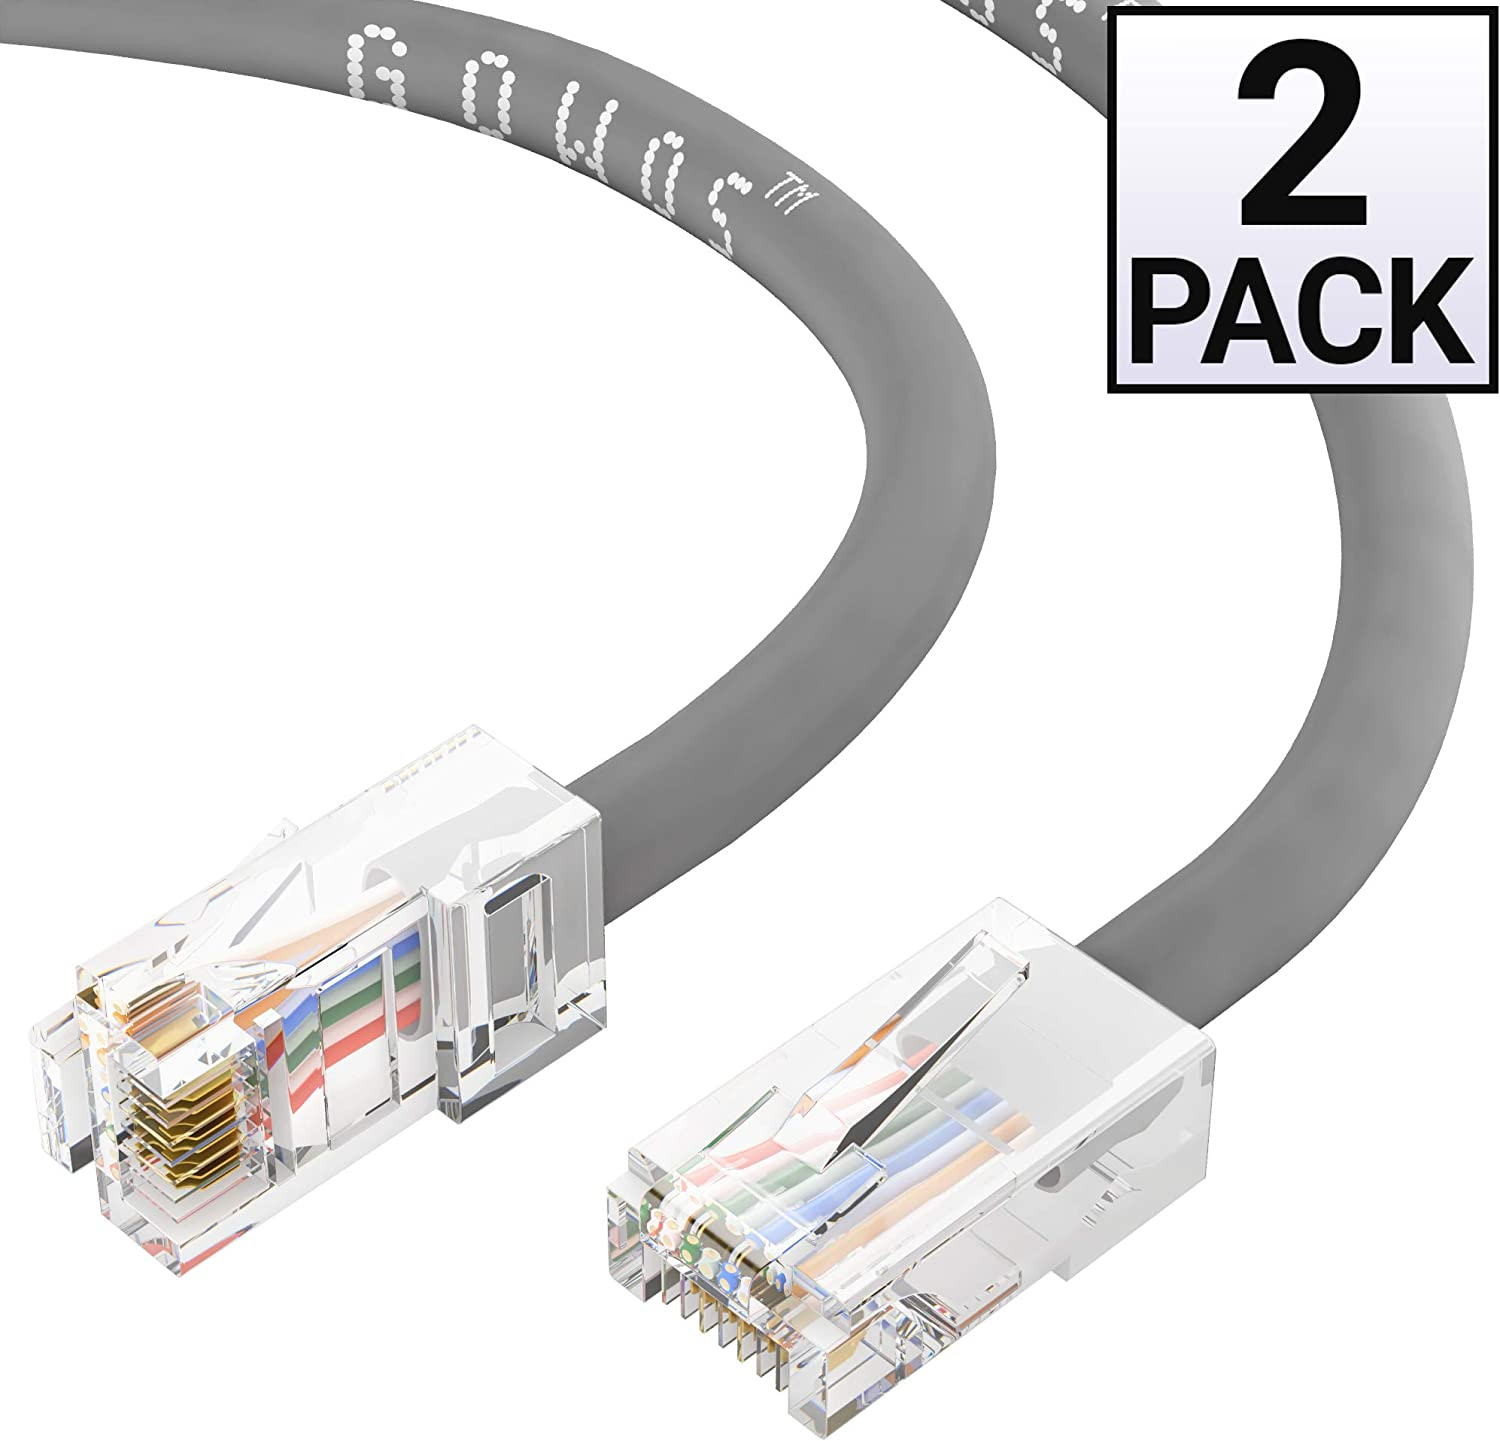 10-Pack - 1.5 Feet 24AWG Network Cable with Gold Plated RJ45 Non-Booted Connector Gray 350MHz GOWOS Cat5e Ethernet Cable 1Gigabit//Sec High Speed LAN Internet//Patch Cable